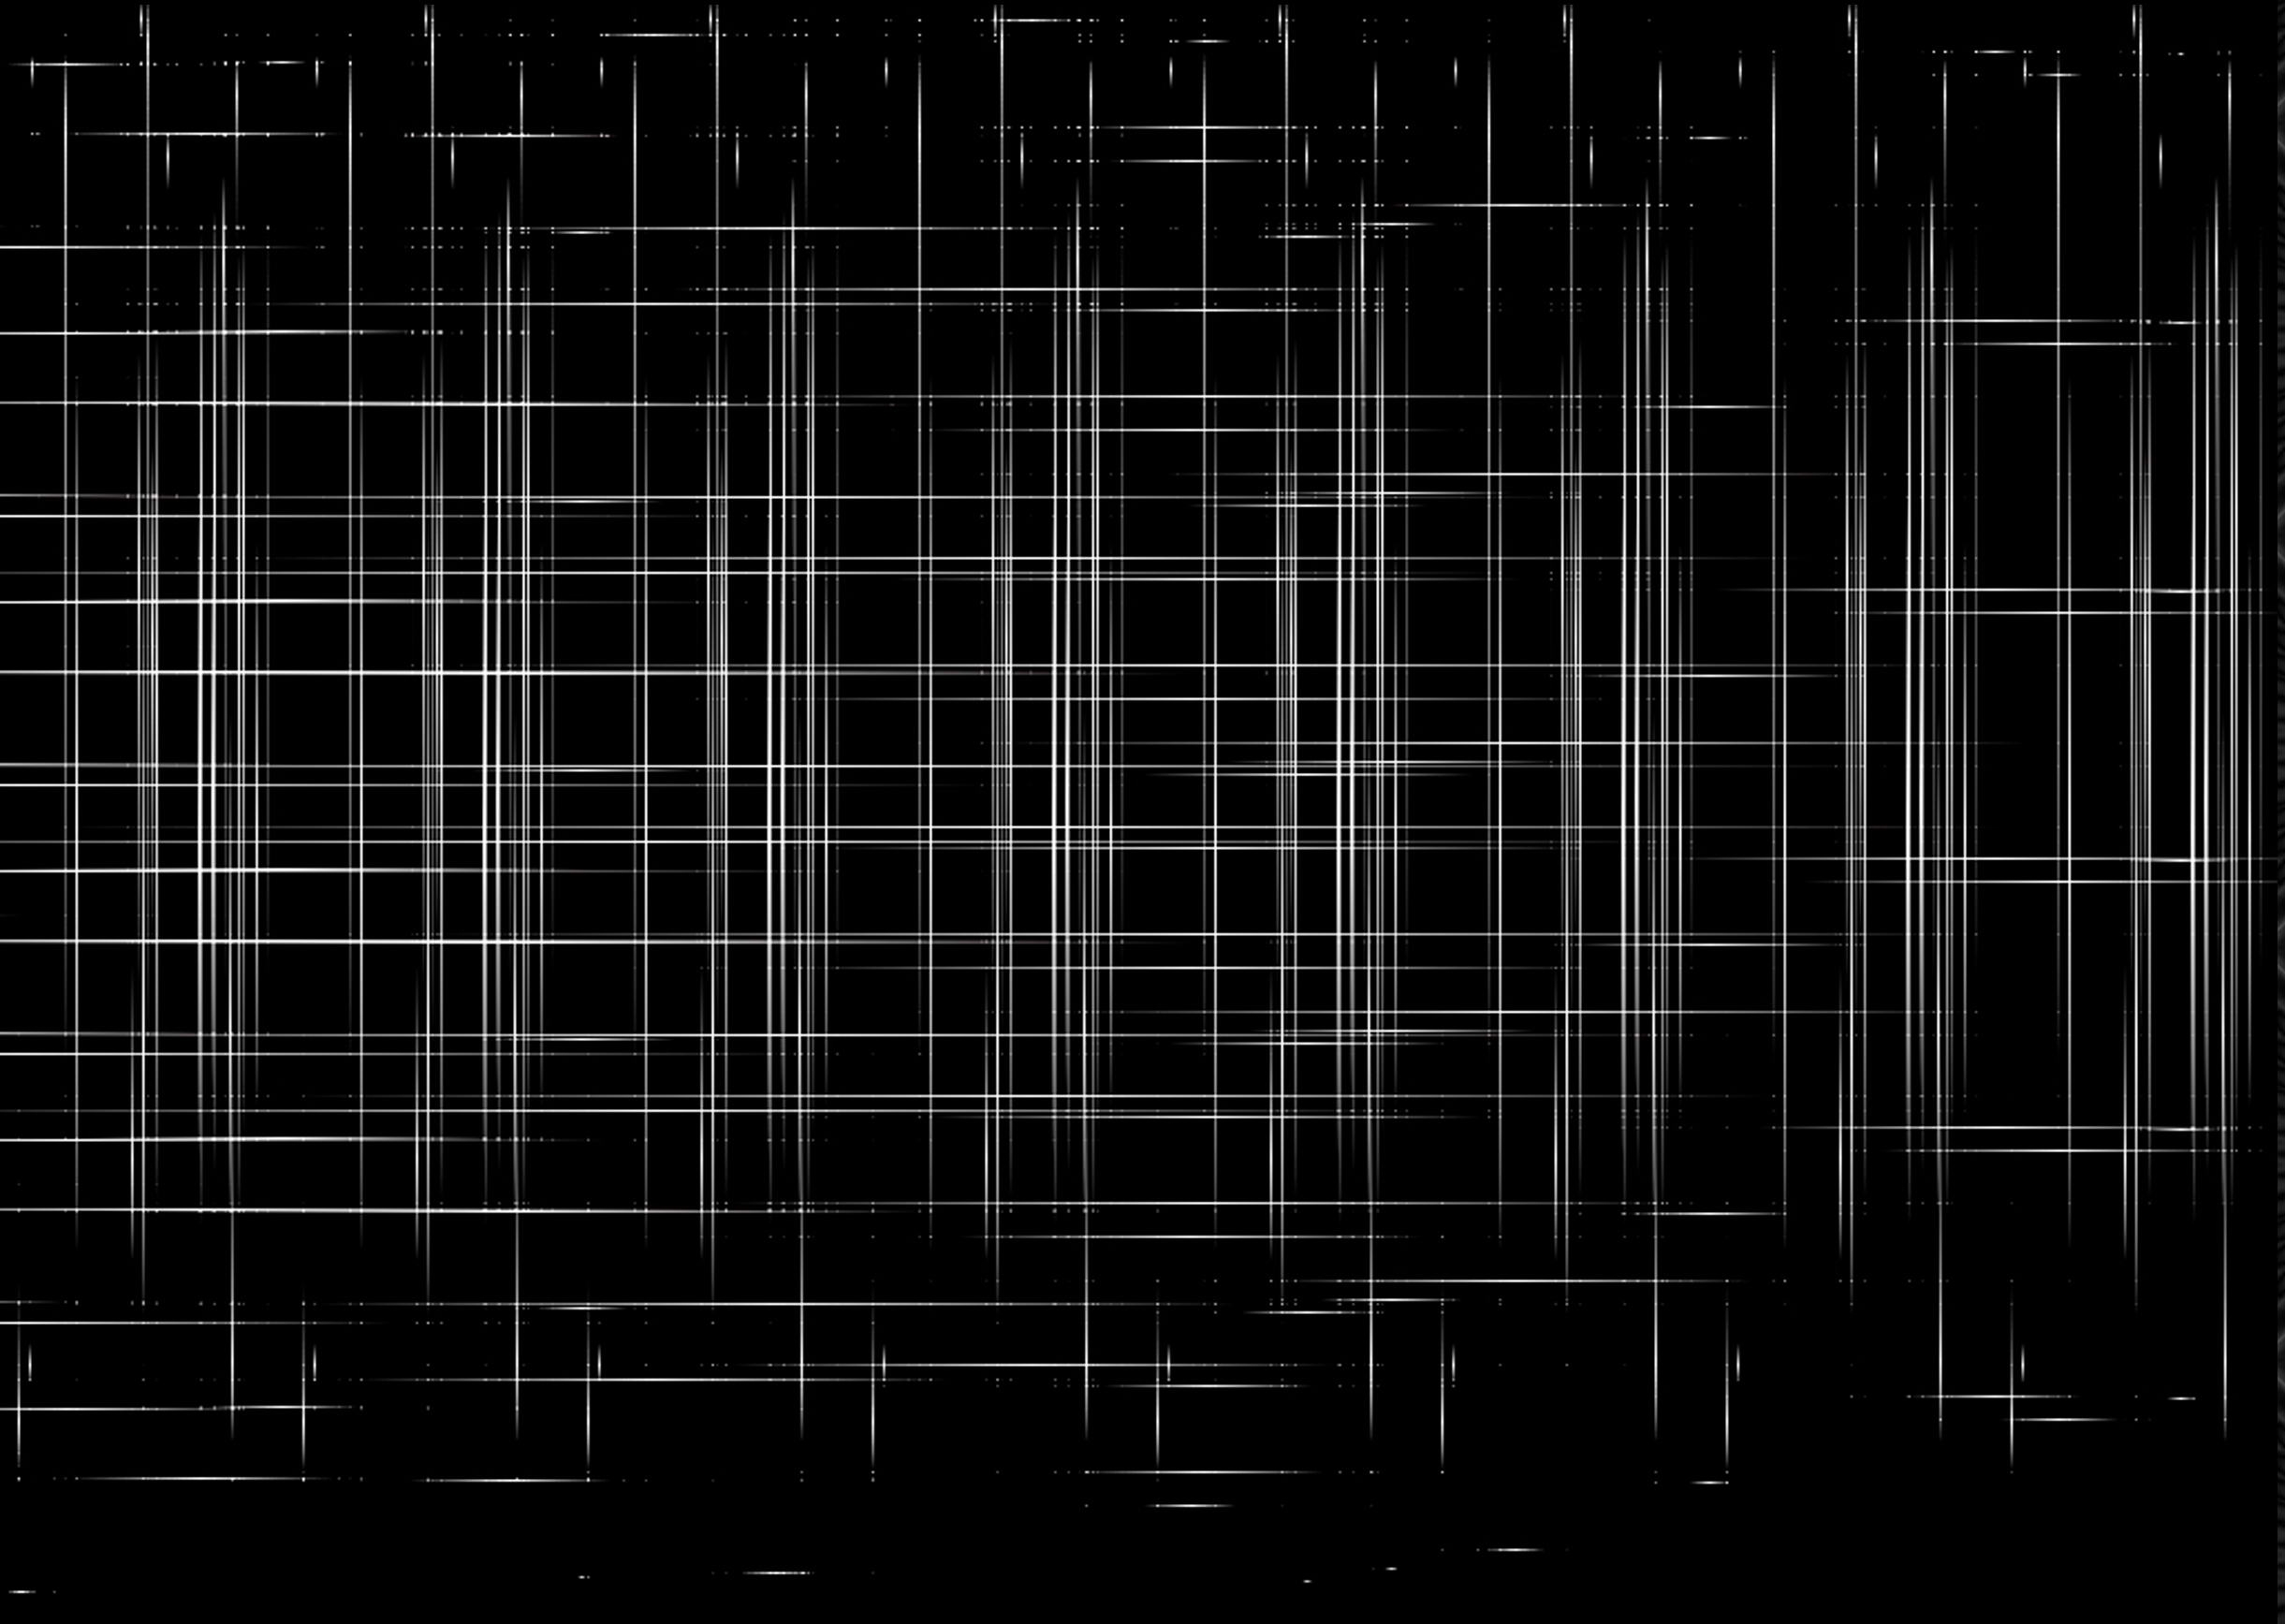 115069 download wallpaper Grid, Black Background, Abstract screensavers and pictures for free